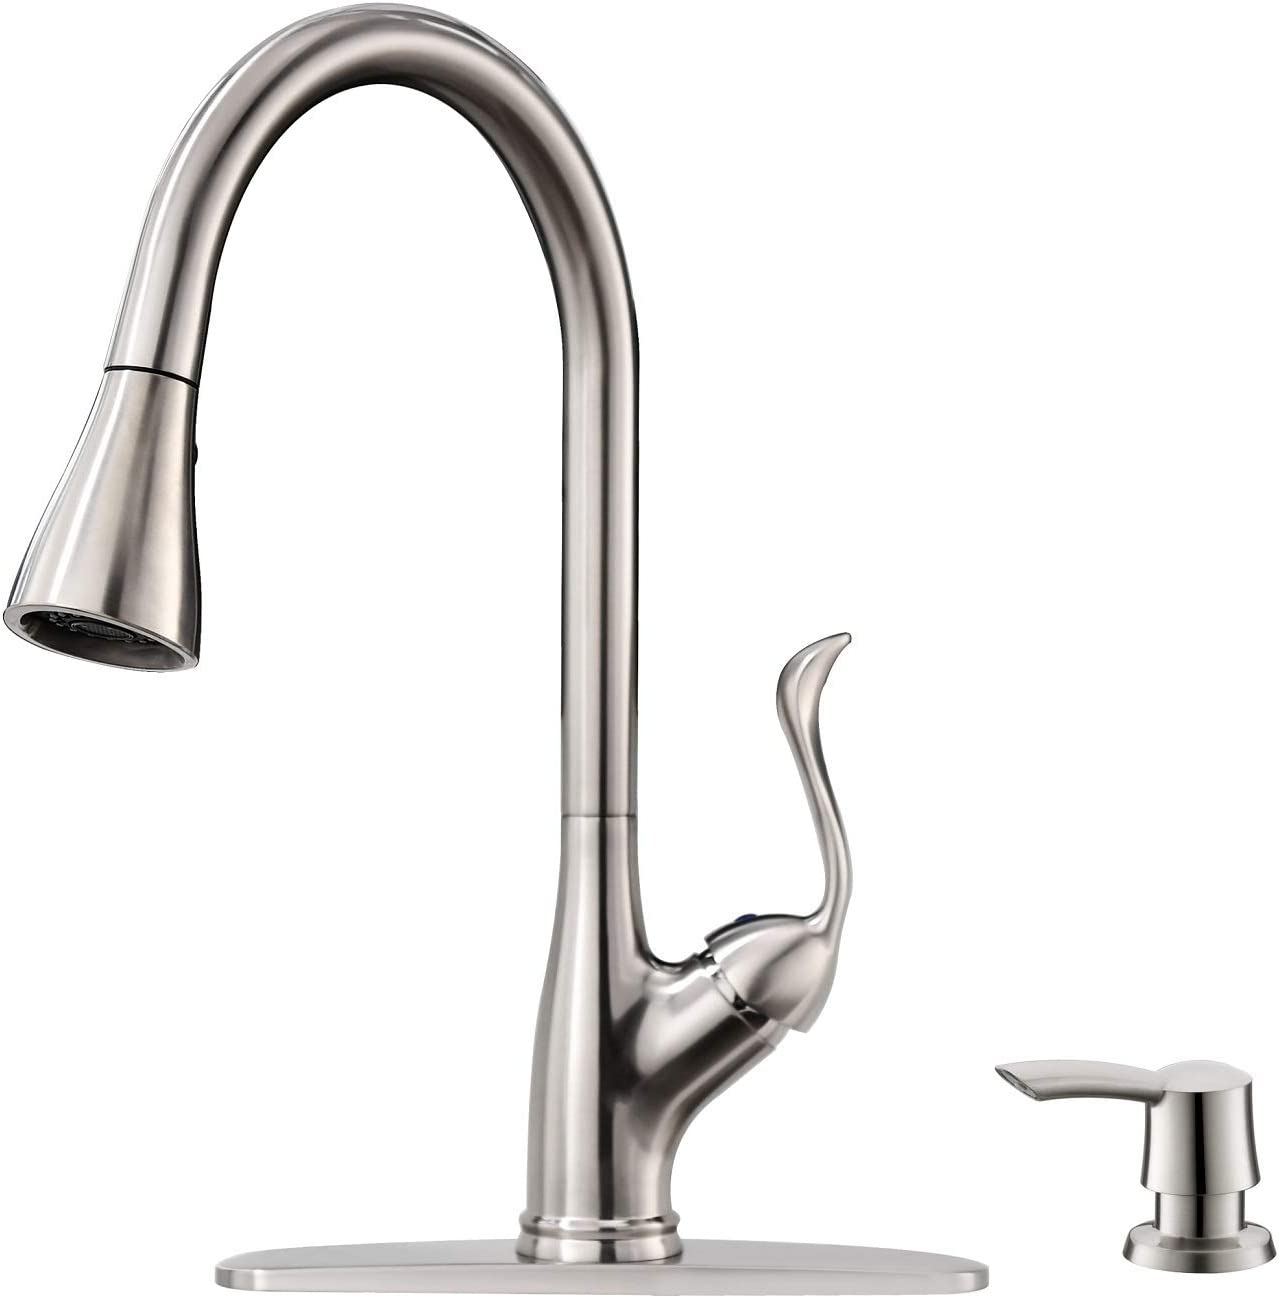 Touch Kitchen Faucets with Pull Down Sprayer Matte Black Sink /& Soap Dispenser